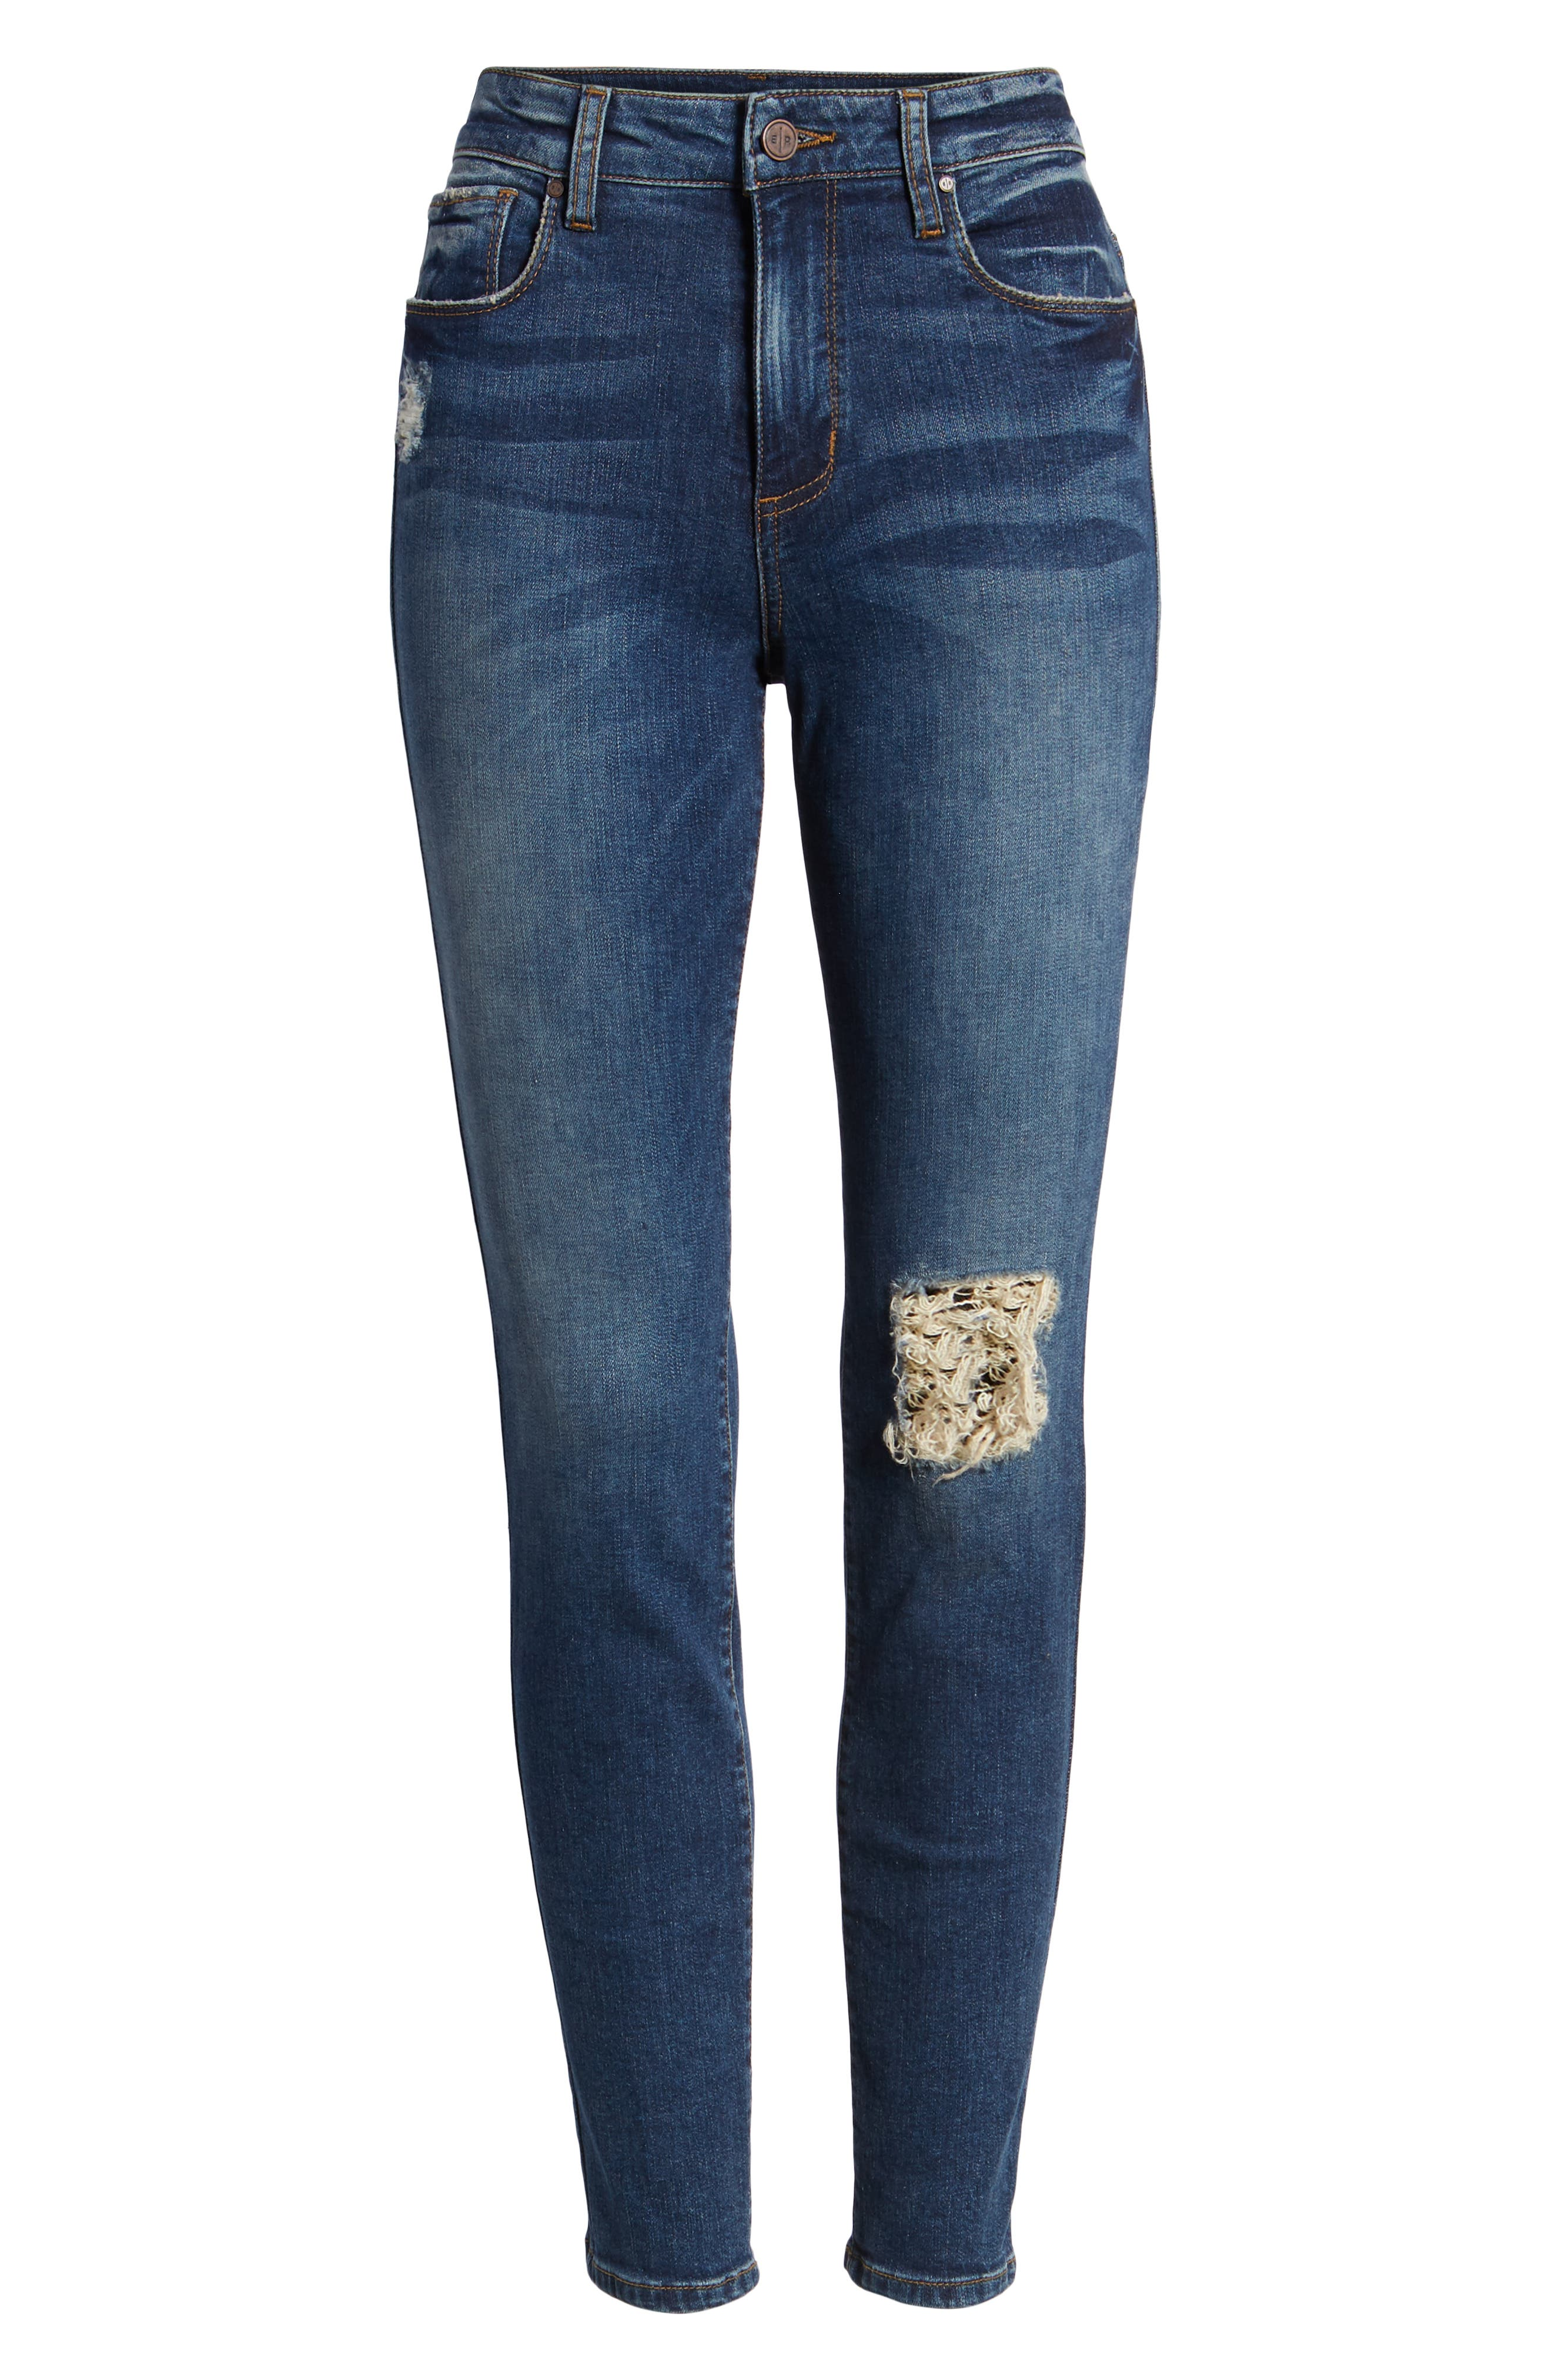 Ripped High Waist Skinny Jeans,                             Alternate thumbnail 7, color,                             000